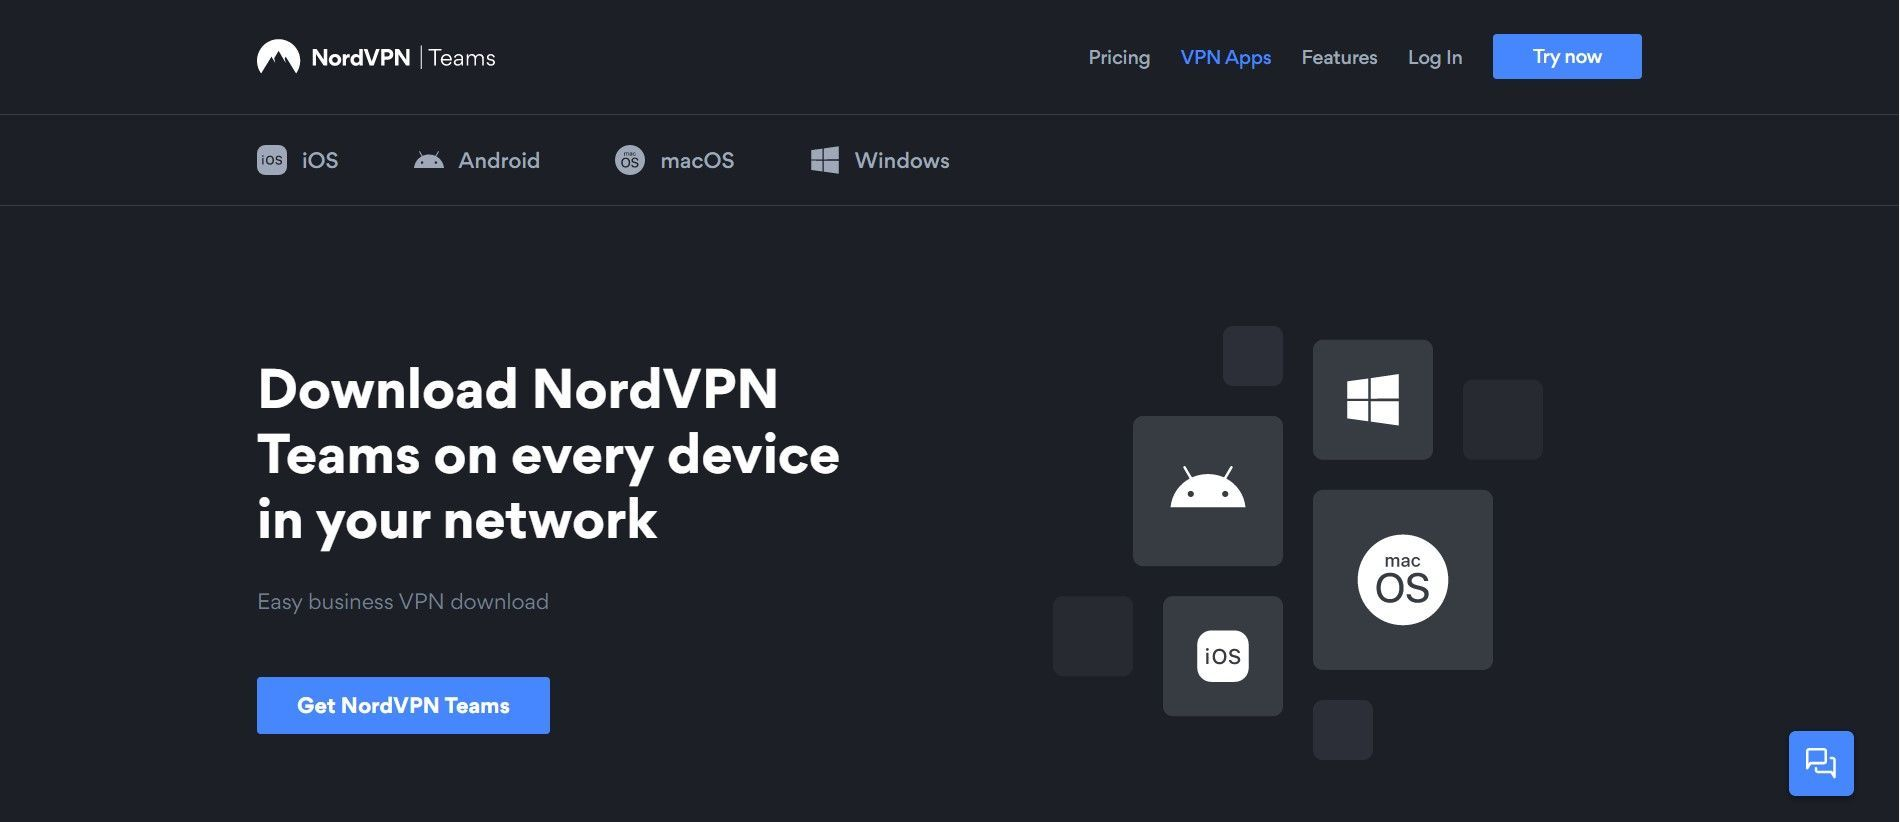 Nord Vpn Premium Accounts Free Updated 14 Apr 2020 In 2020 Accounting Spotify Premium Nord